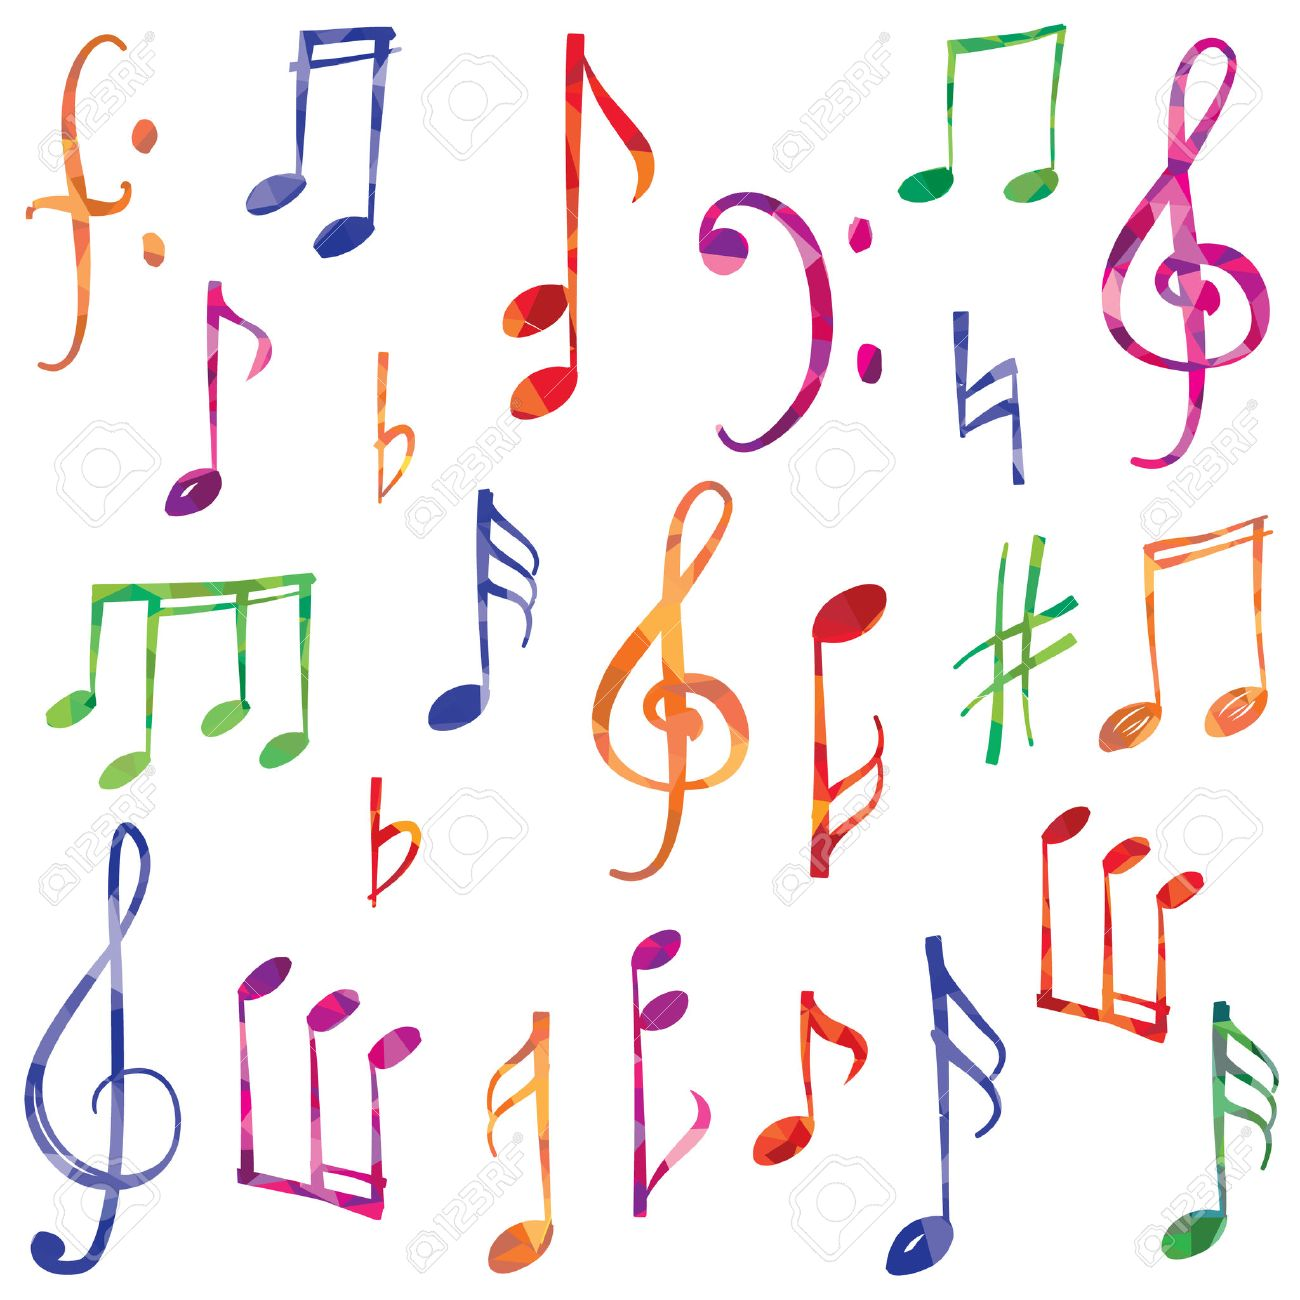 Music notes and signs set hand drawn music symbol sketch music notes and signs set hand drawn music symbol sketch collection stock vector 57712090 buycottarizona